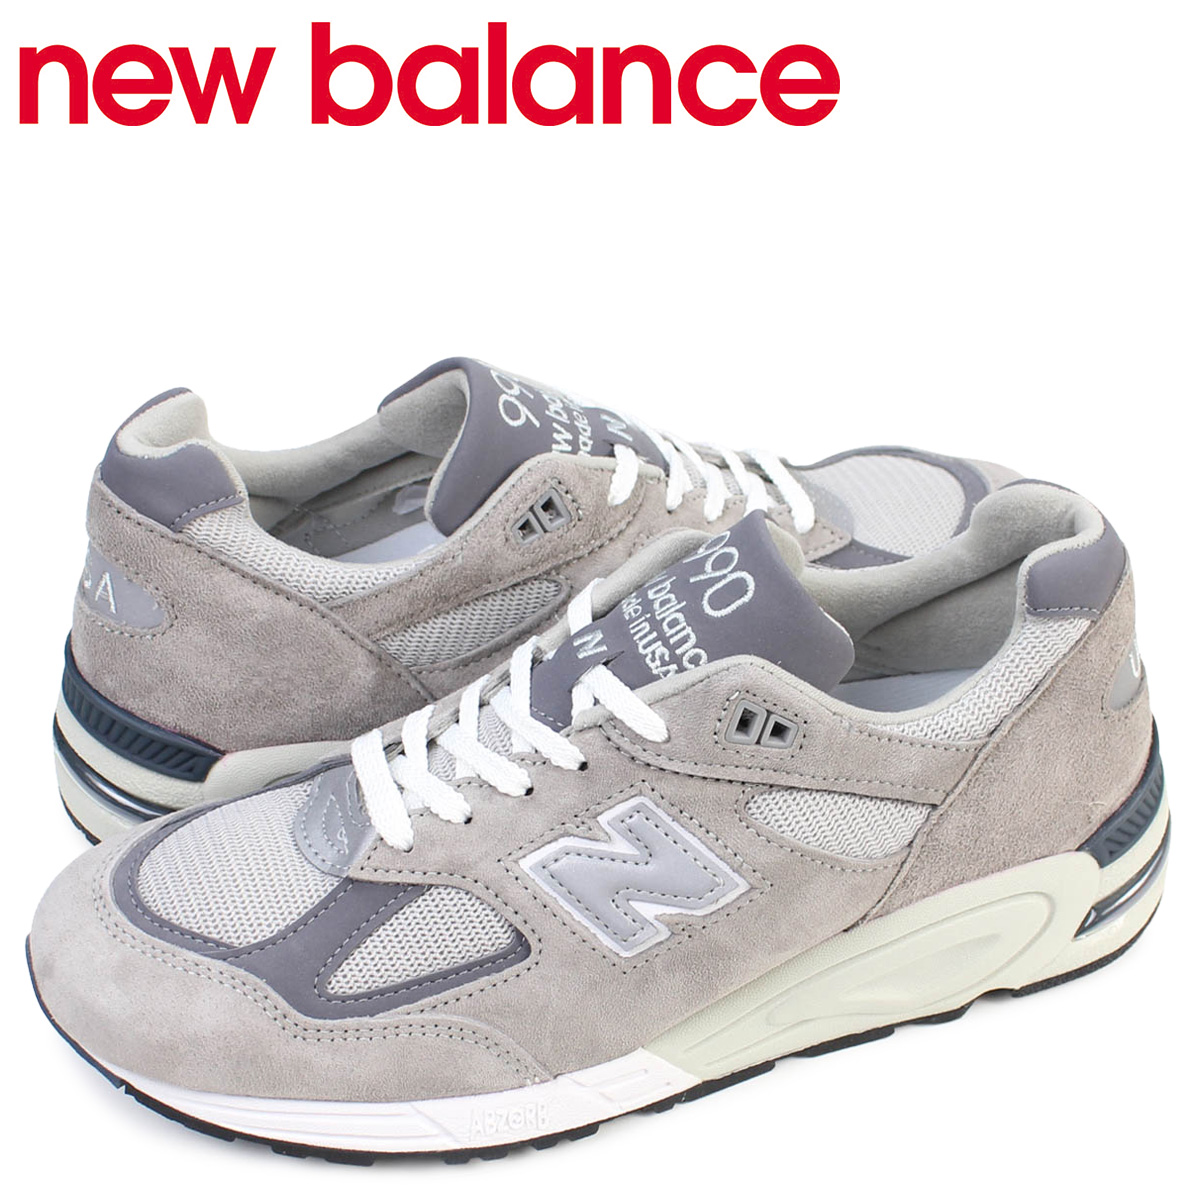 newest 363f2 73399 New Balance new balance 990 men's sneakers M990GR2 D Wise gray MADE IN USA